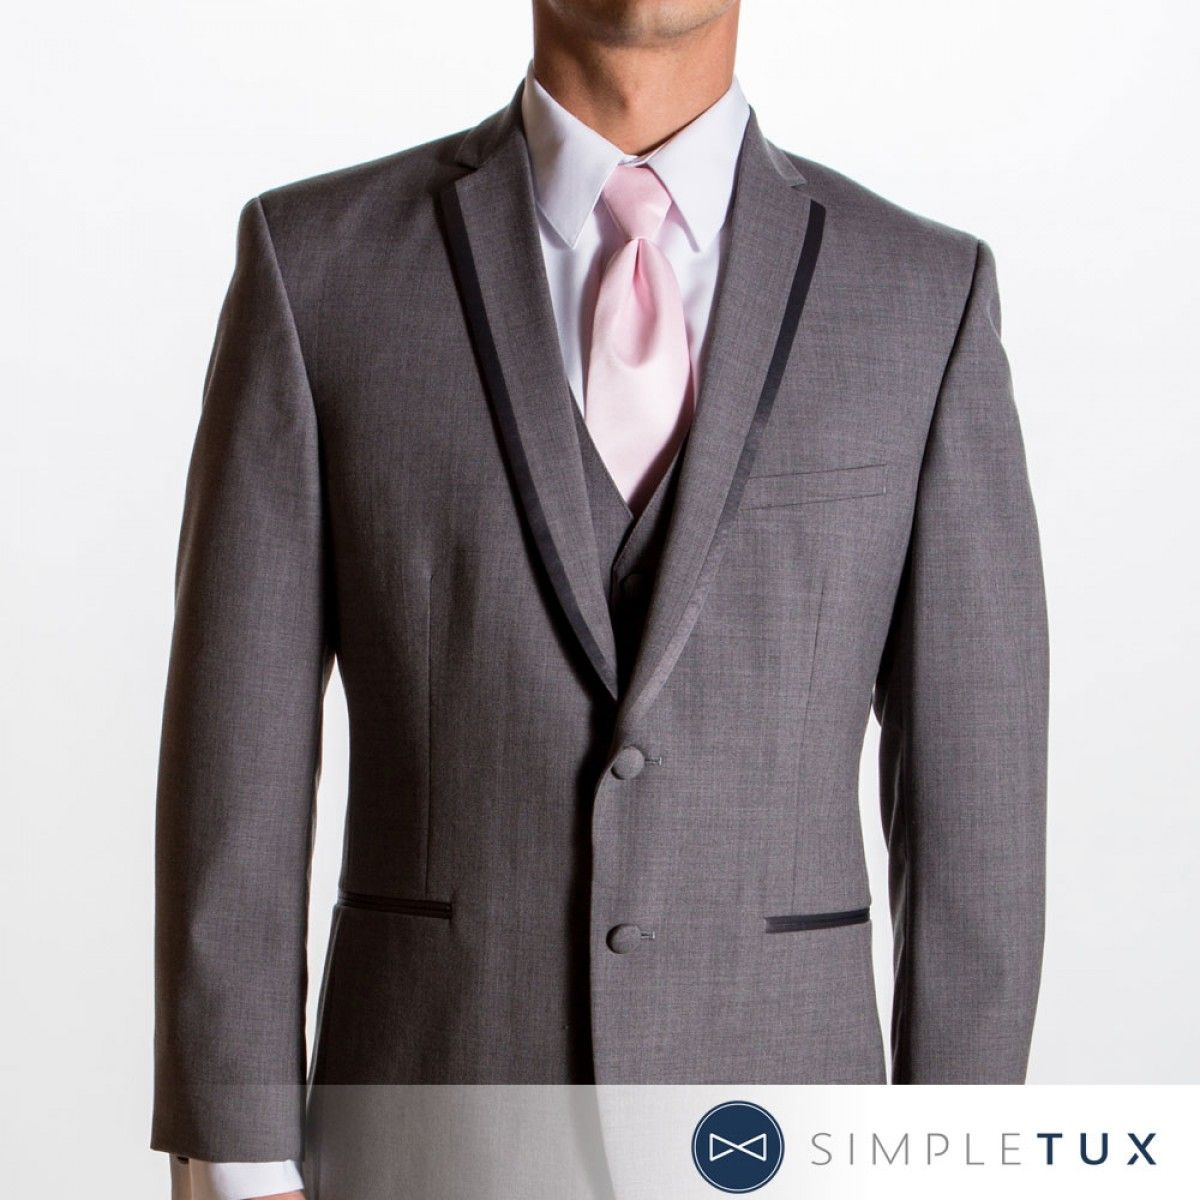 Gray Tux Wedding: Gray Tux With Pink - Google Search